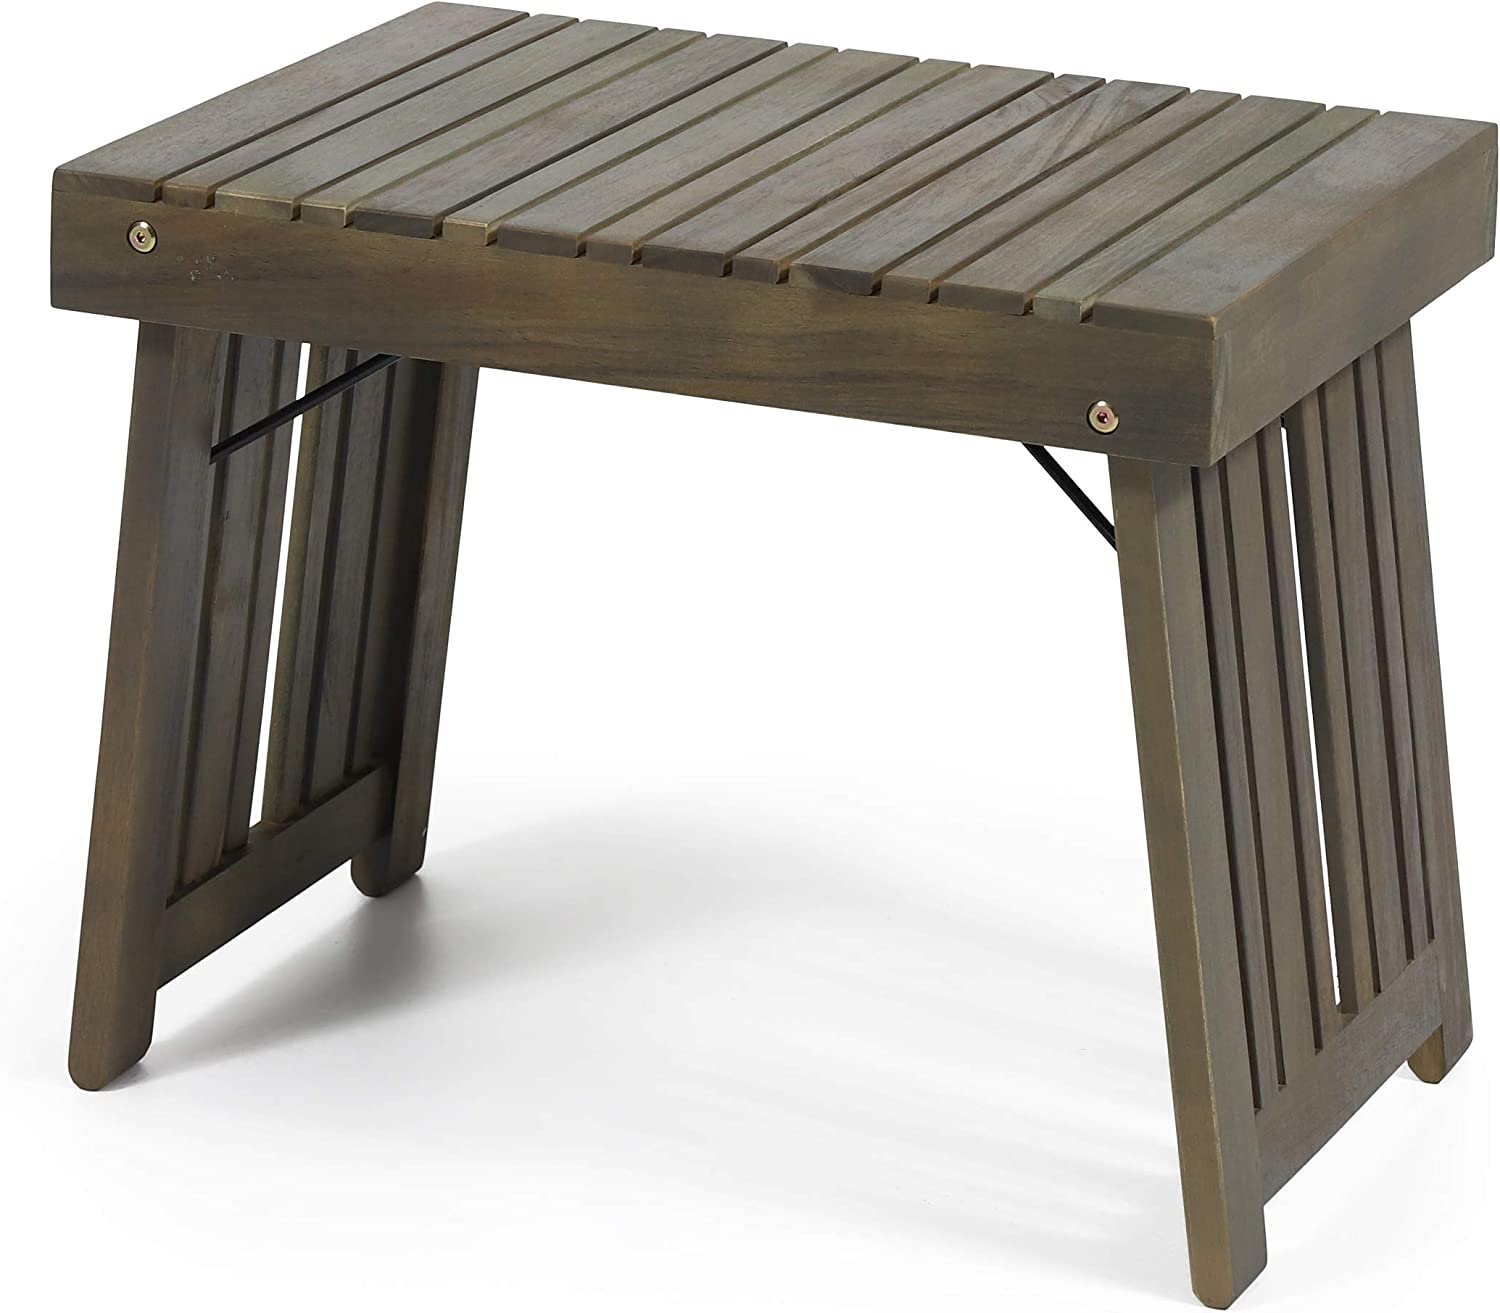 Christopher Knight Home 312745 Howard Outdoor Acacia Wood Folding Side Table, Gray Finish